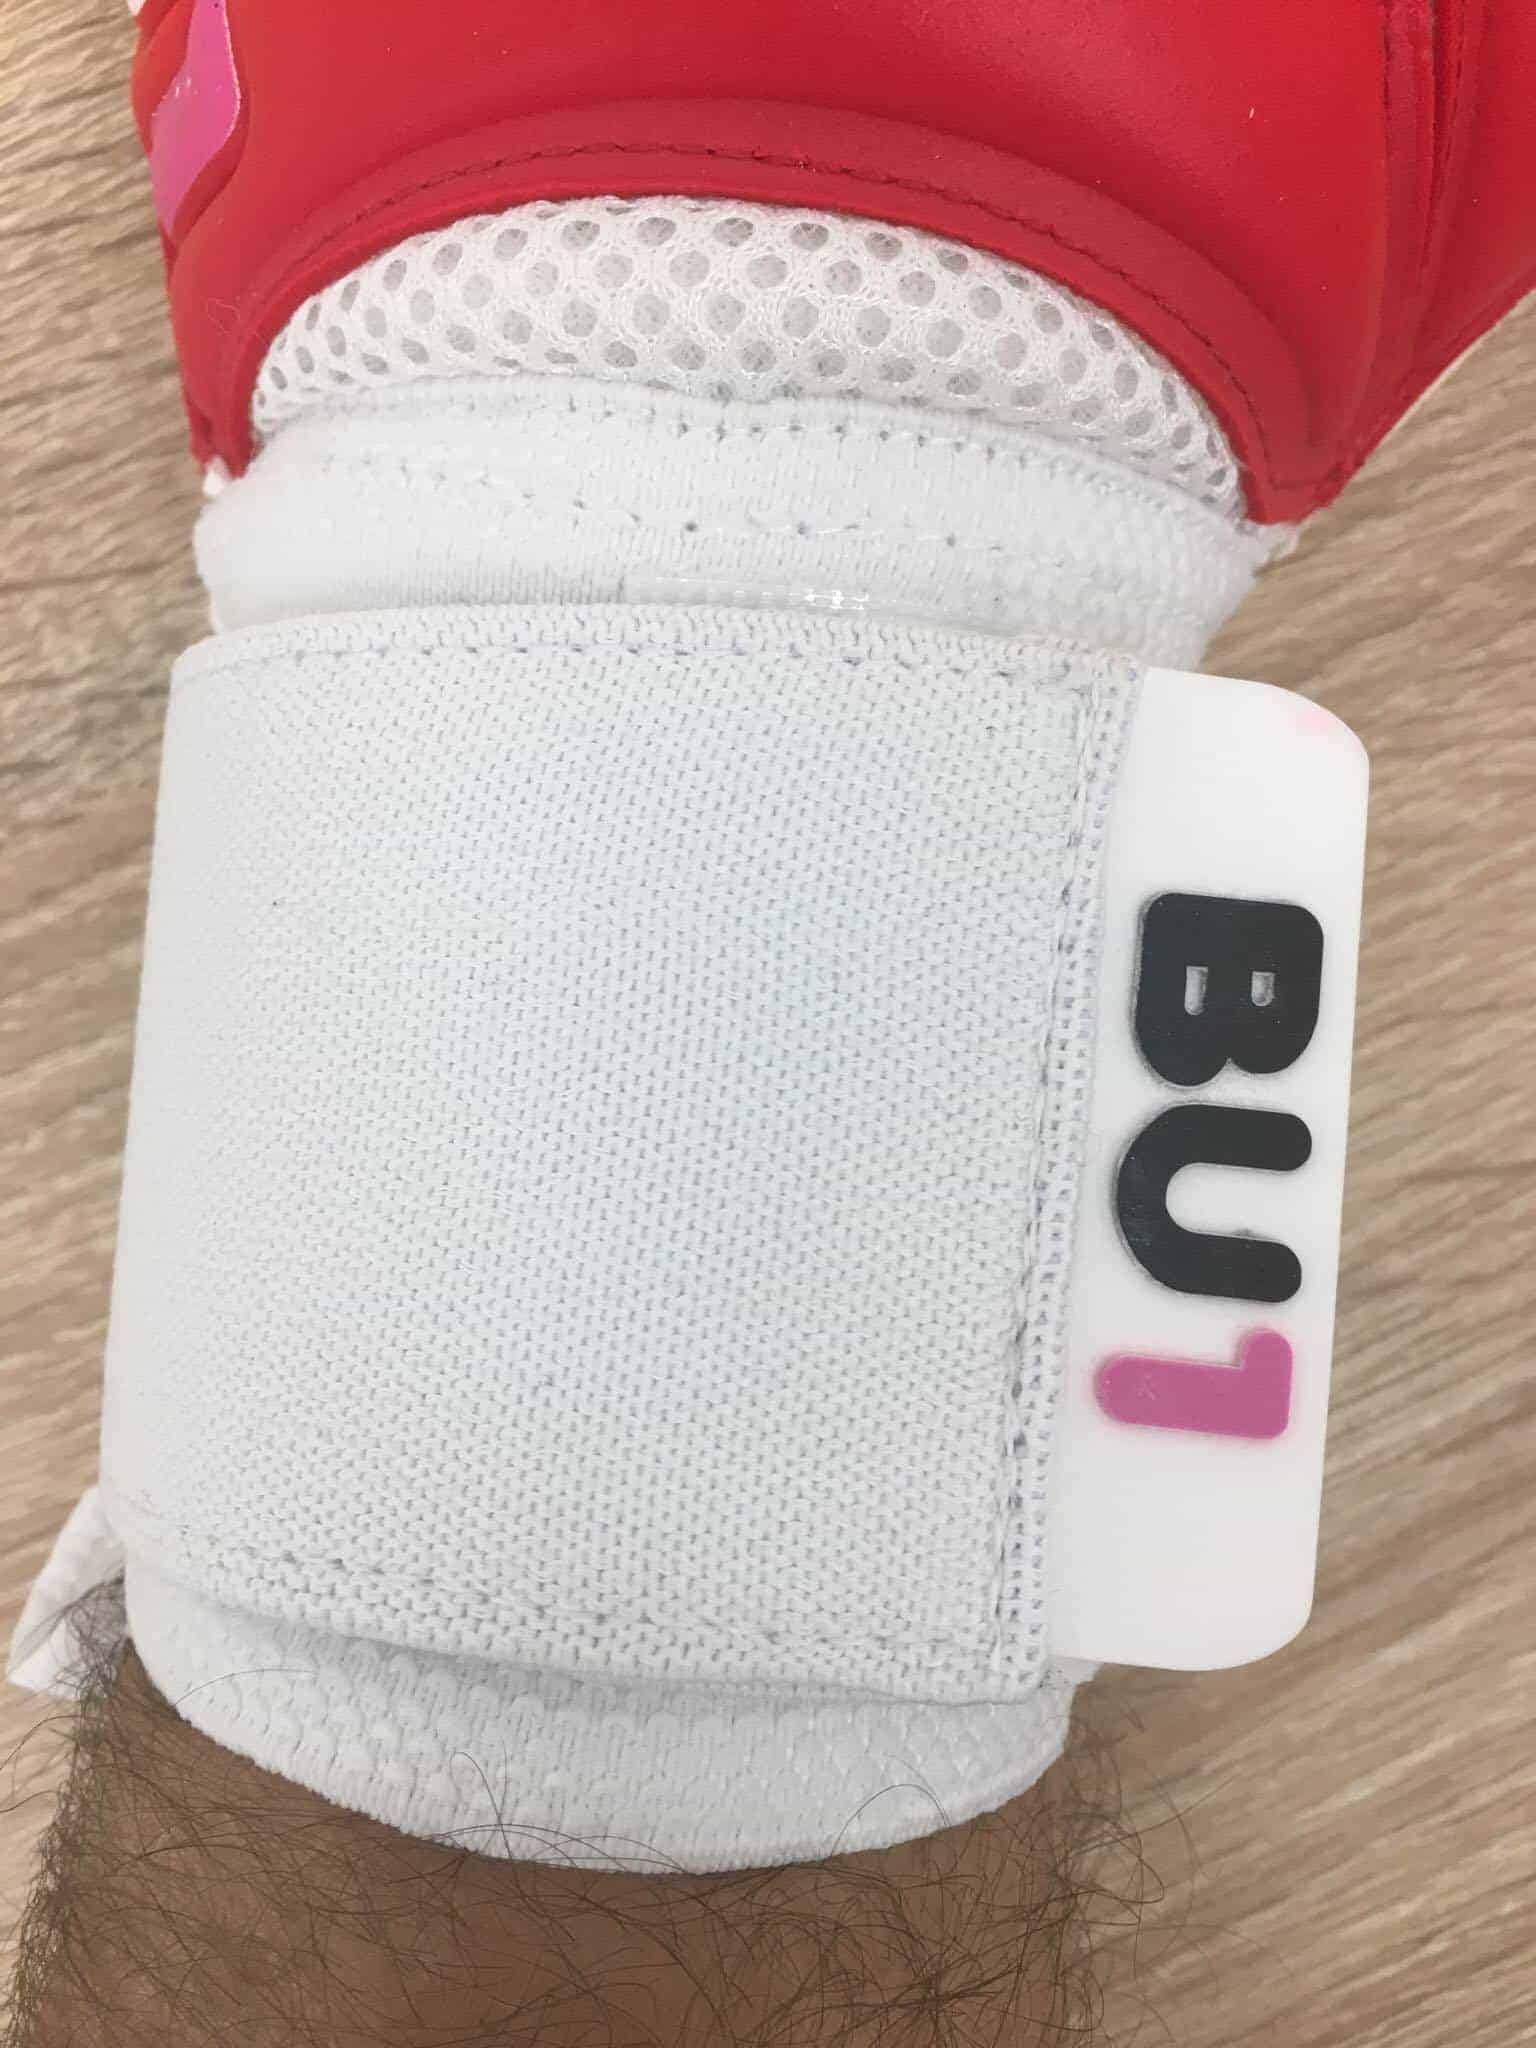 BU1 Red model goalkeeper gloves